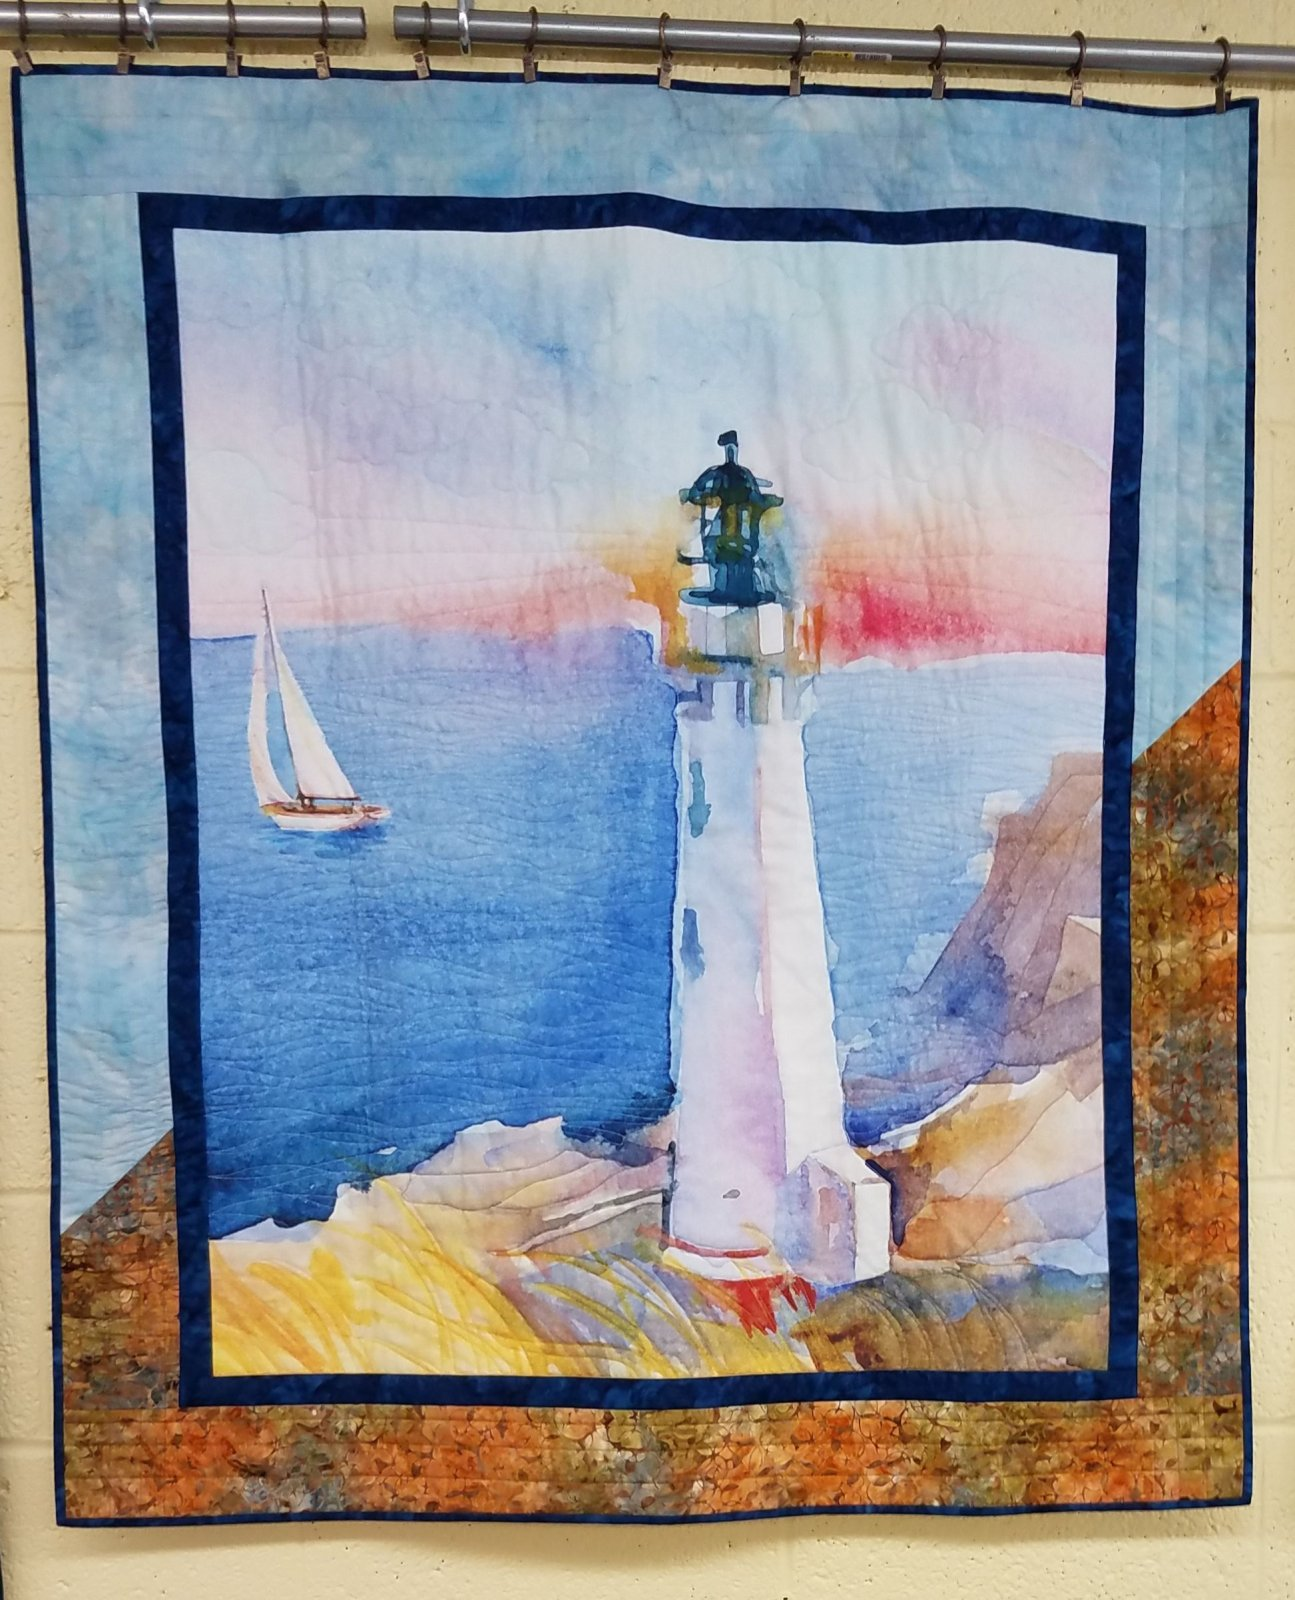 At The Shore Quilt - 39 1/2 x 45 1/2